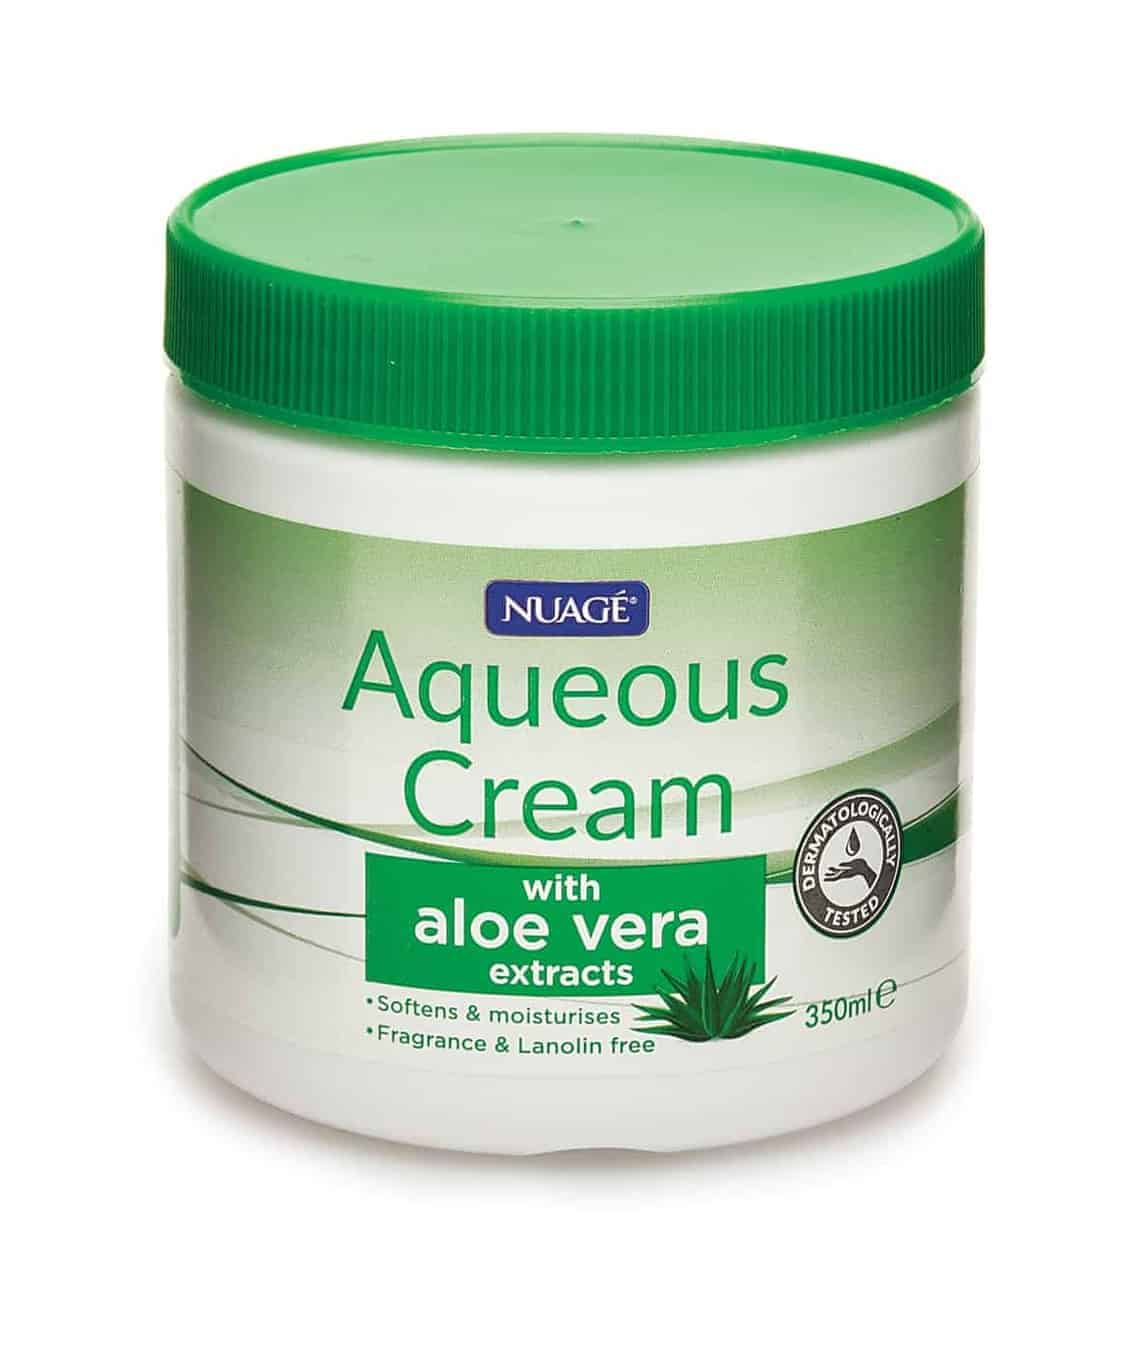 350Ml Aqueous Cream-Aloe Vera